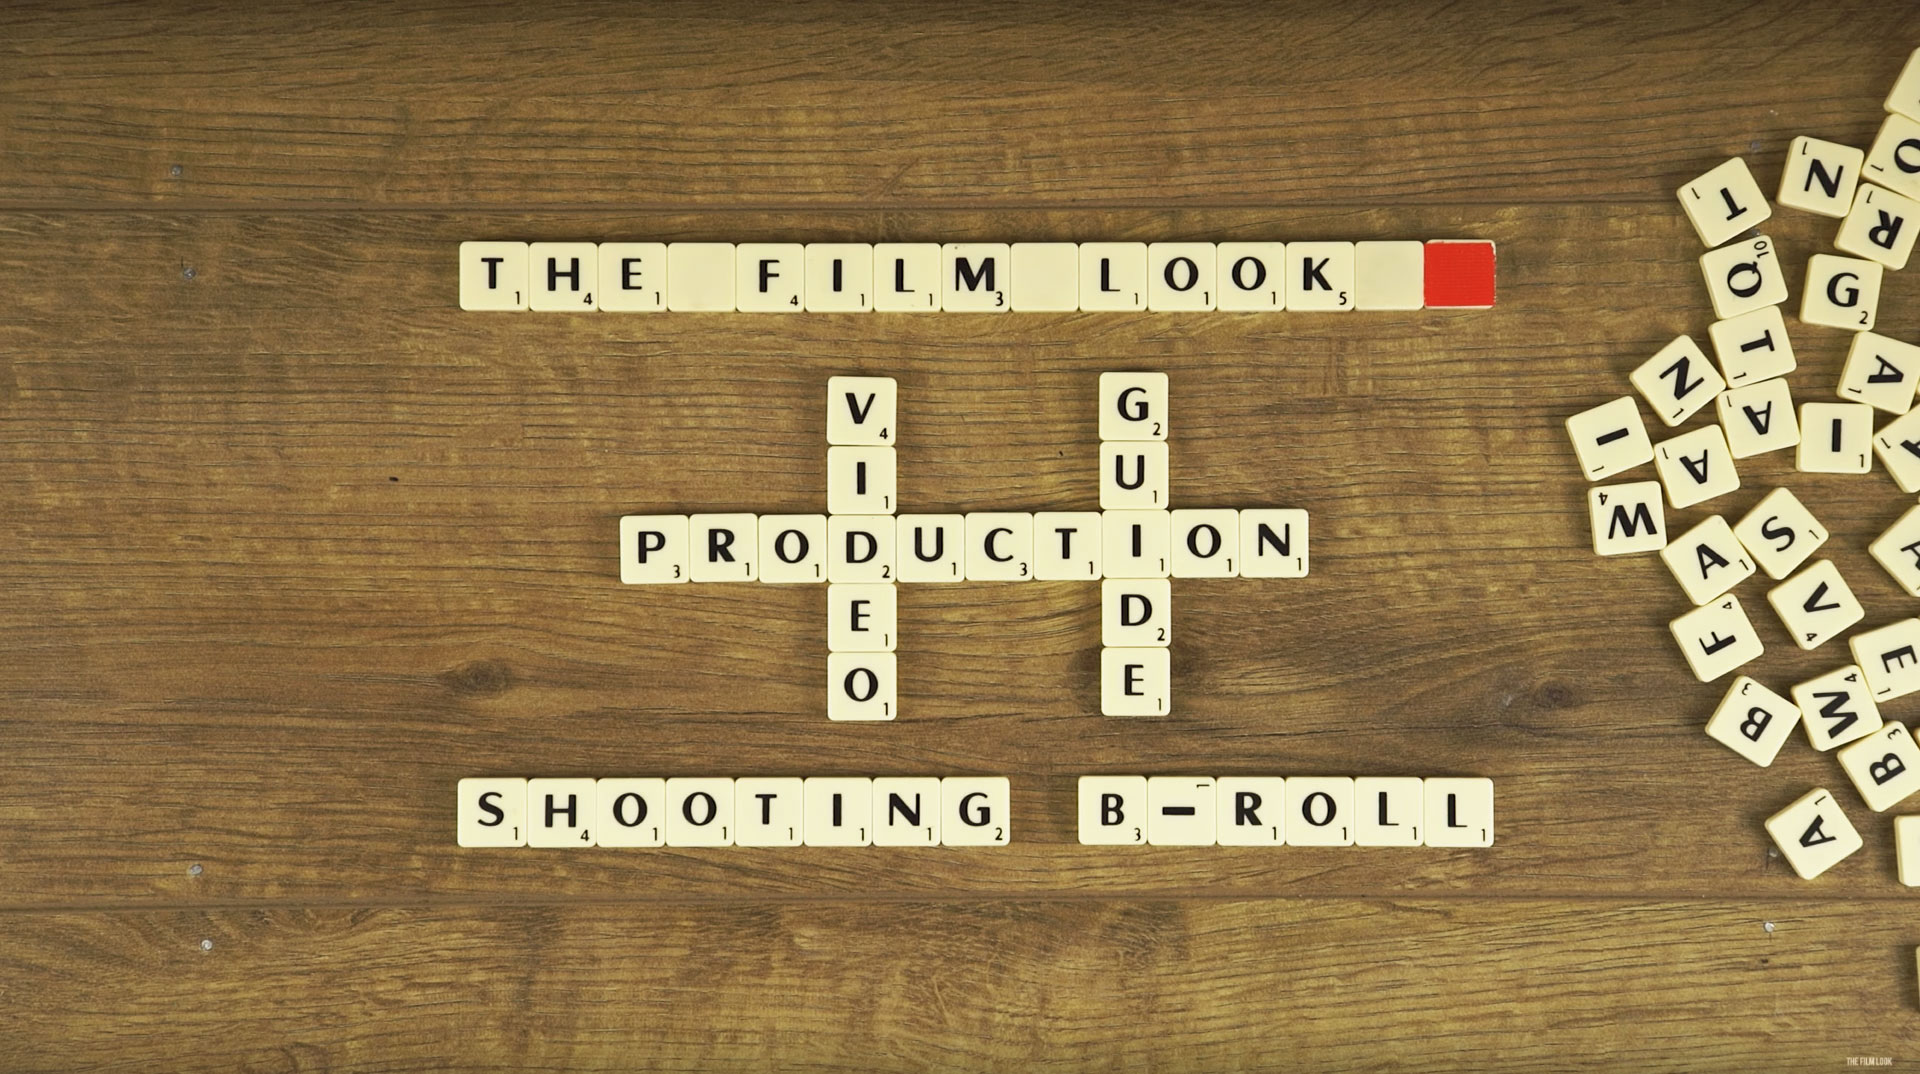 Shooting B-Roll Video Production Guide